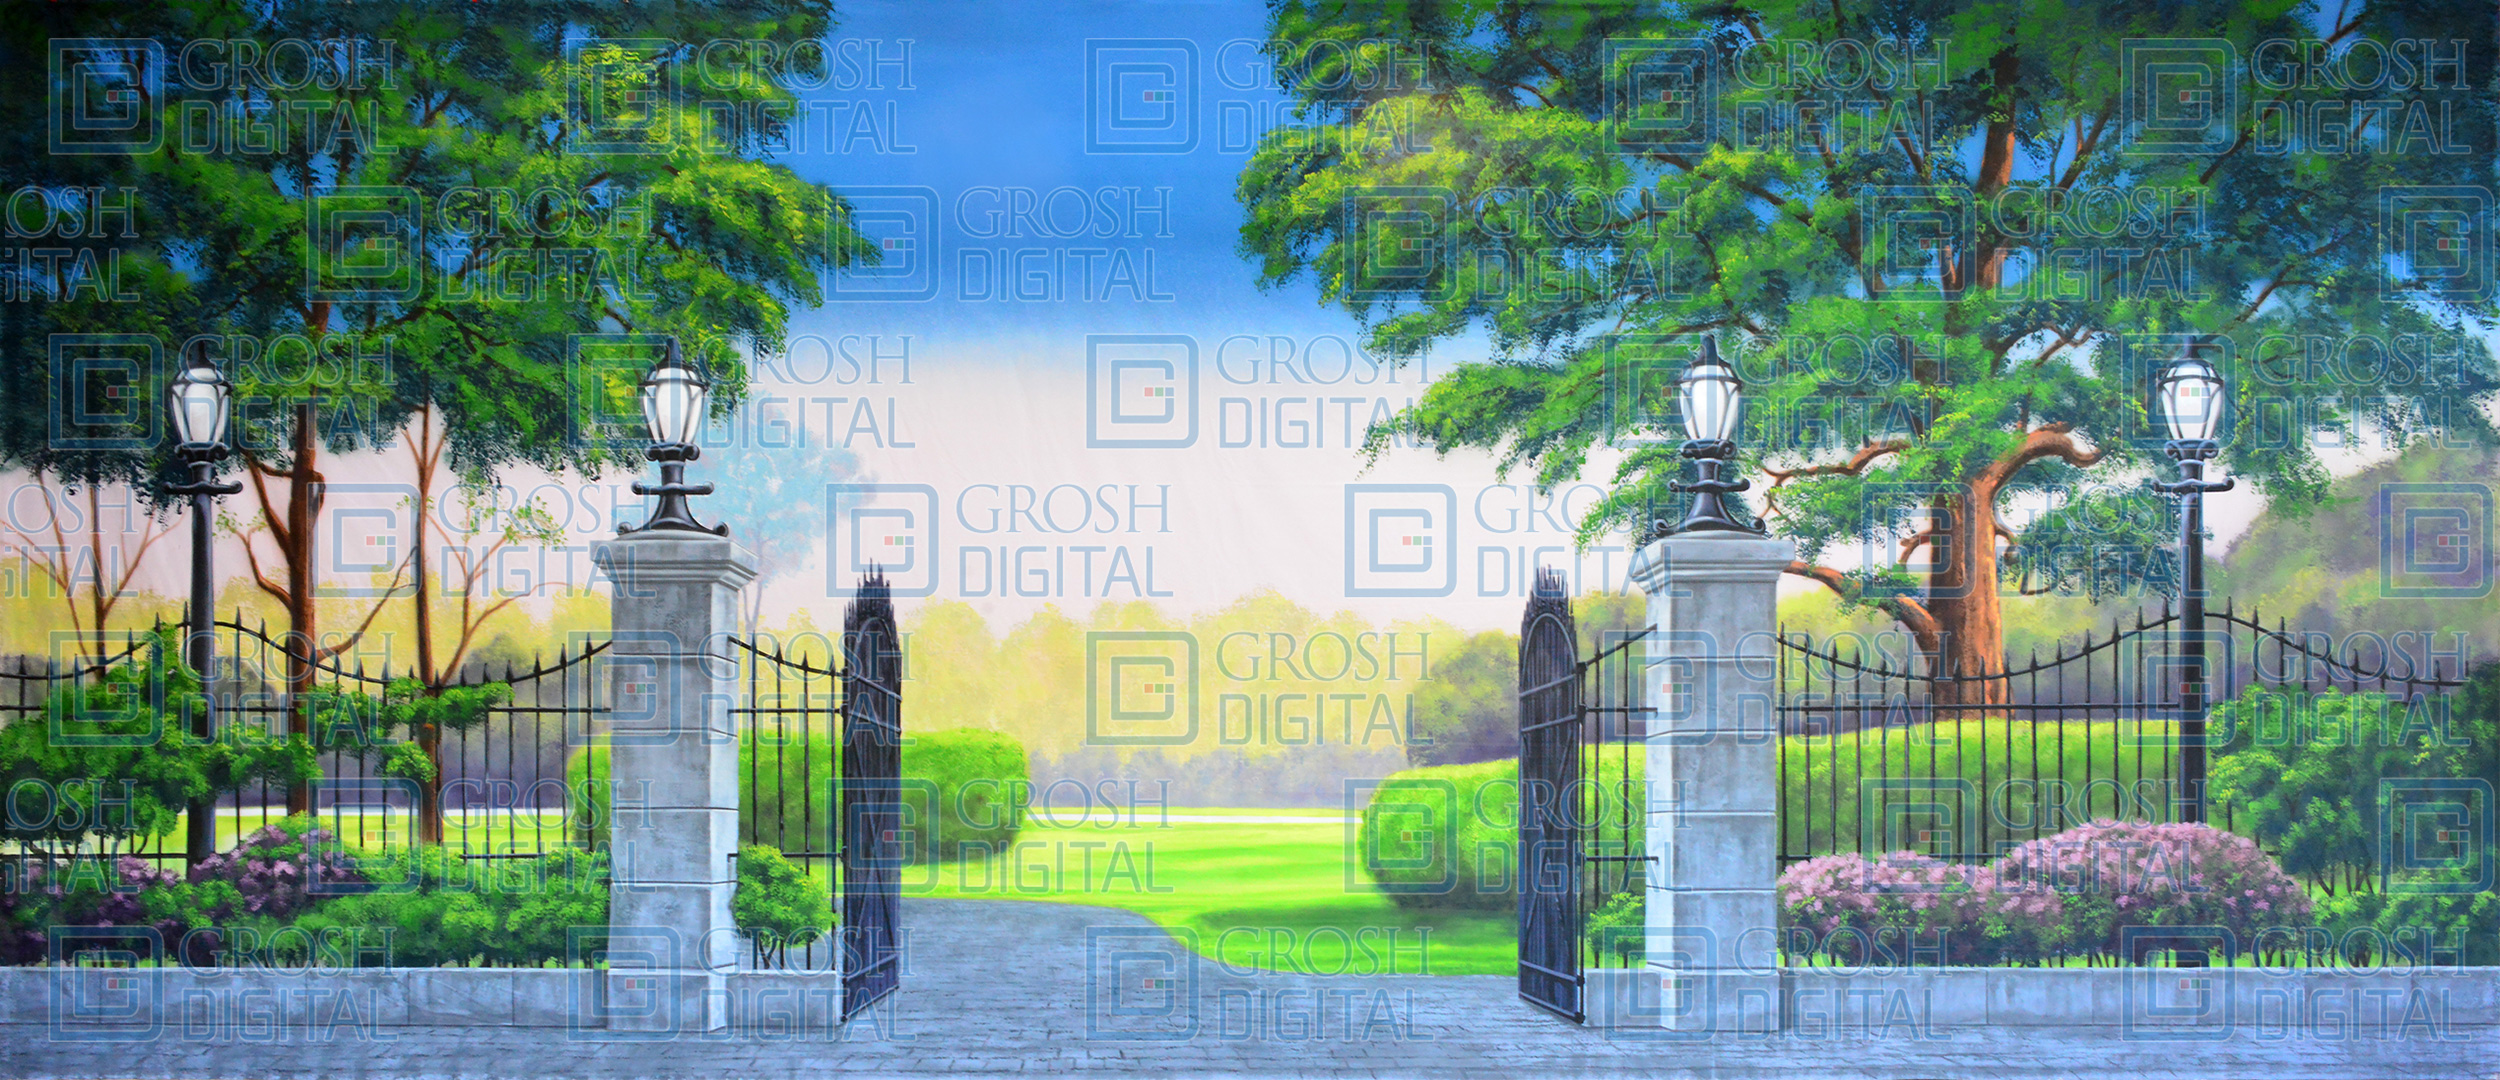 Park Projected Backdrop for Landscapes, Mary Poppins, Pajama Game